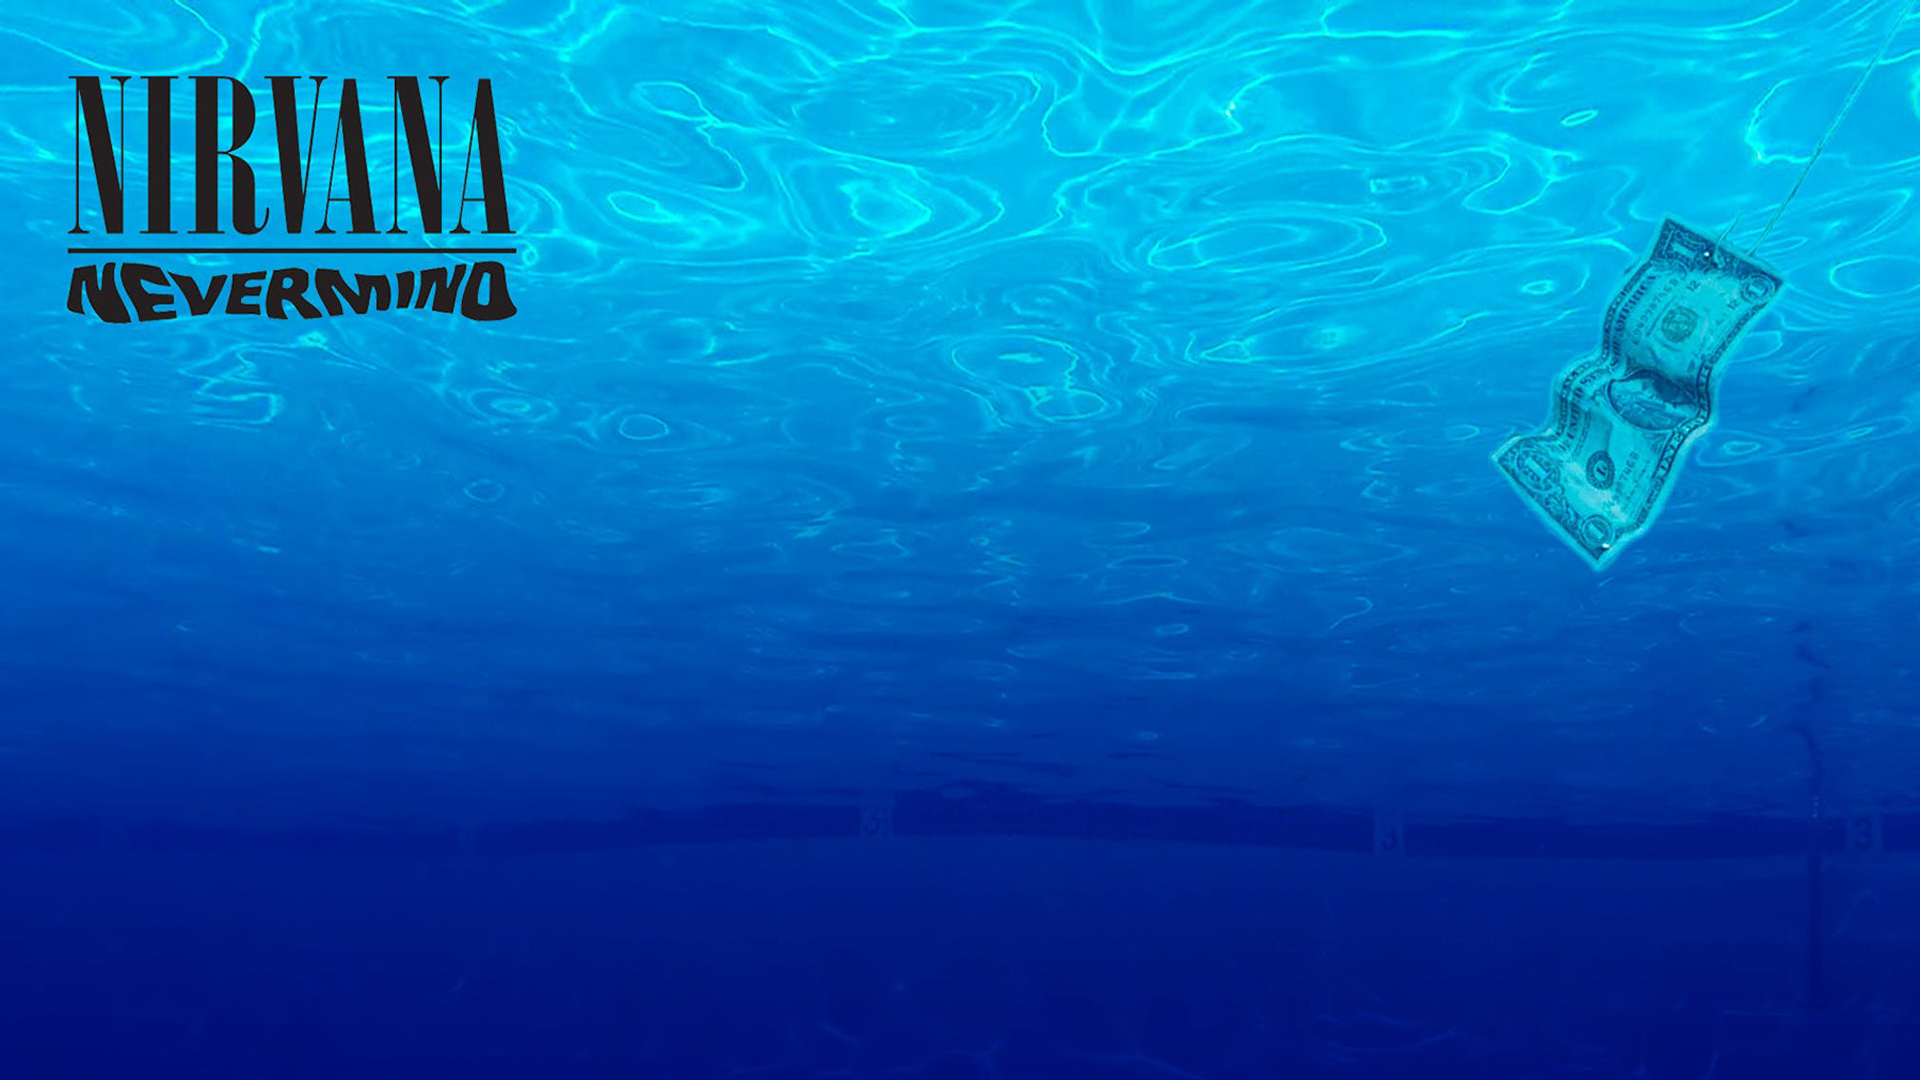 Nirvana Nevermind album cover. Virtual background to use on Zoom, Microsoft Teams, Skype, Google Meet, WebEx or any other compatible app.